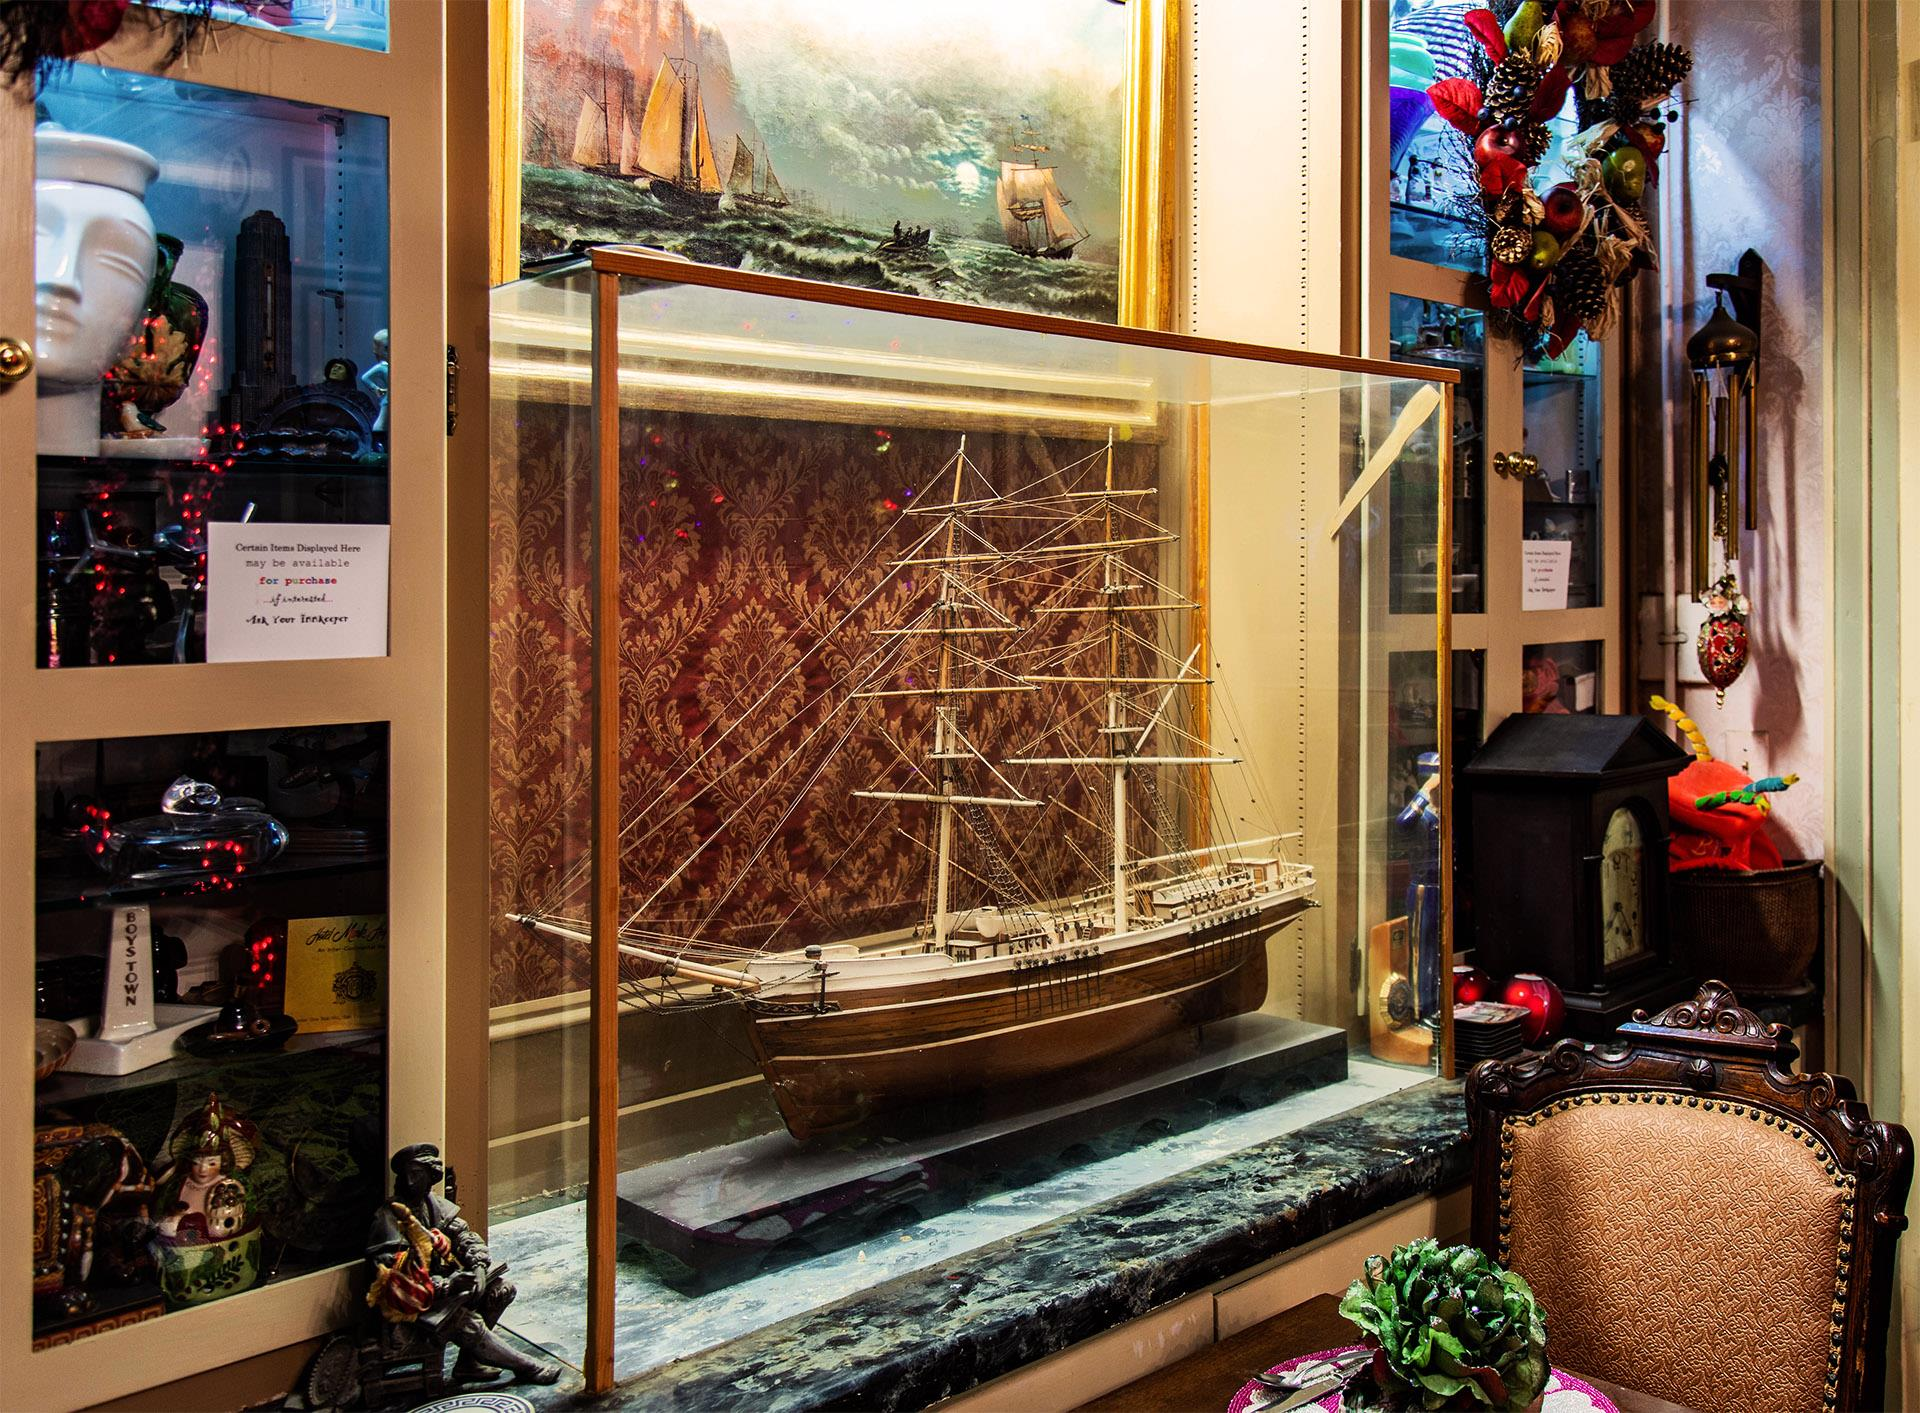 model-ship-in-glass-case-from-side